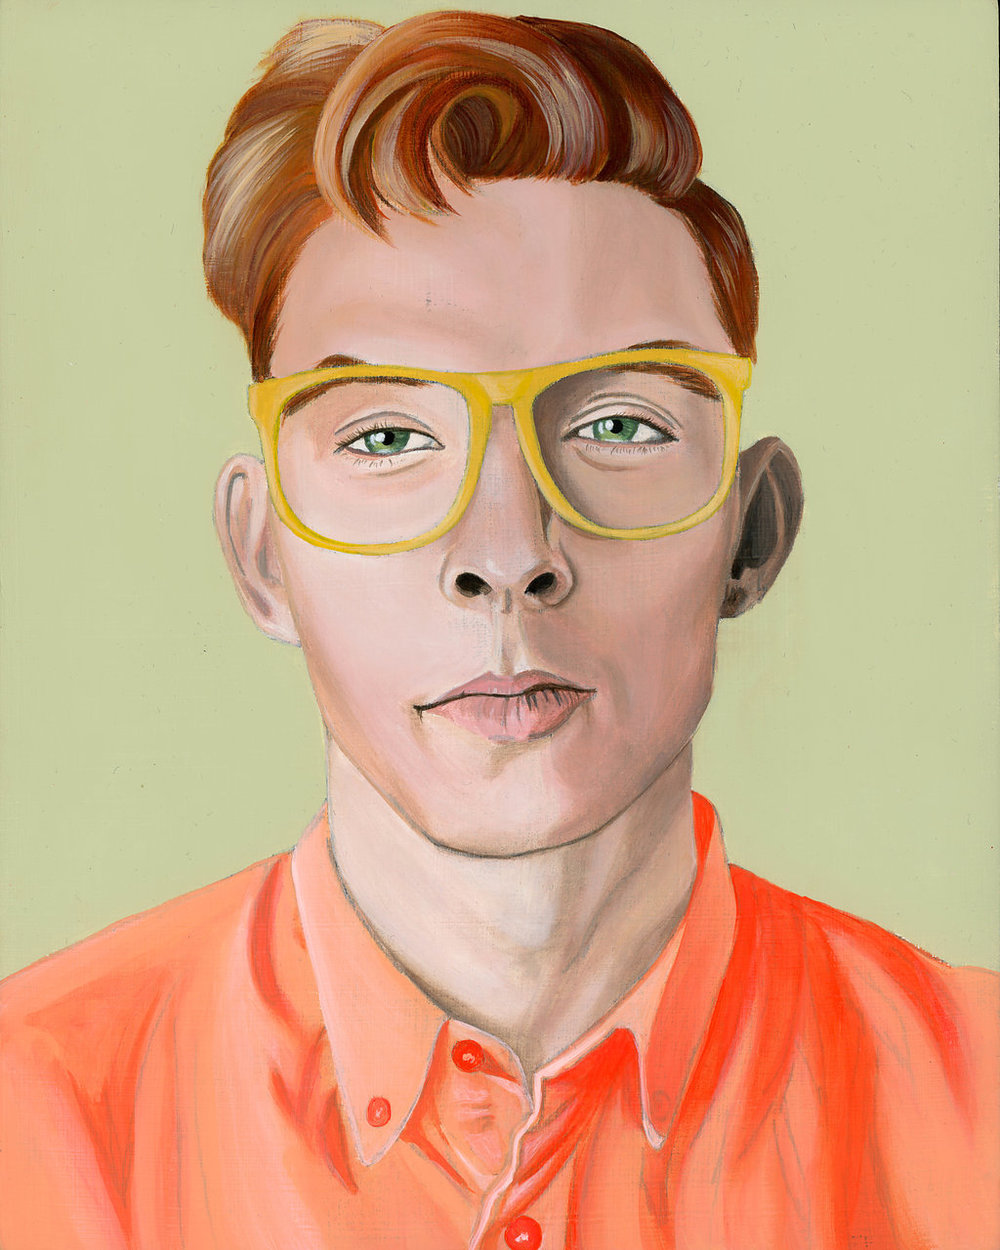 Caucasian man with red hair and yellow glasses- Curious Darling - J Danielle Wehunt